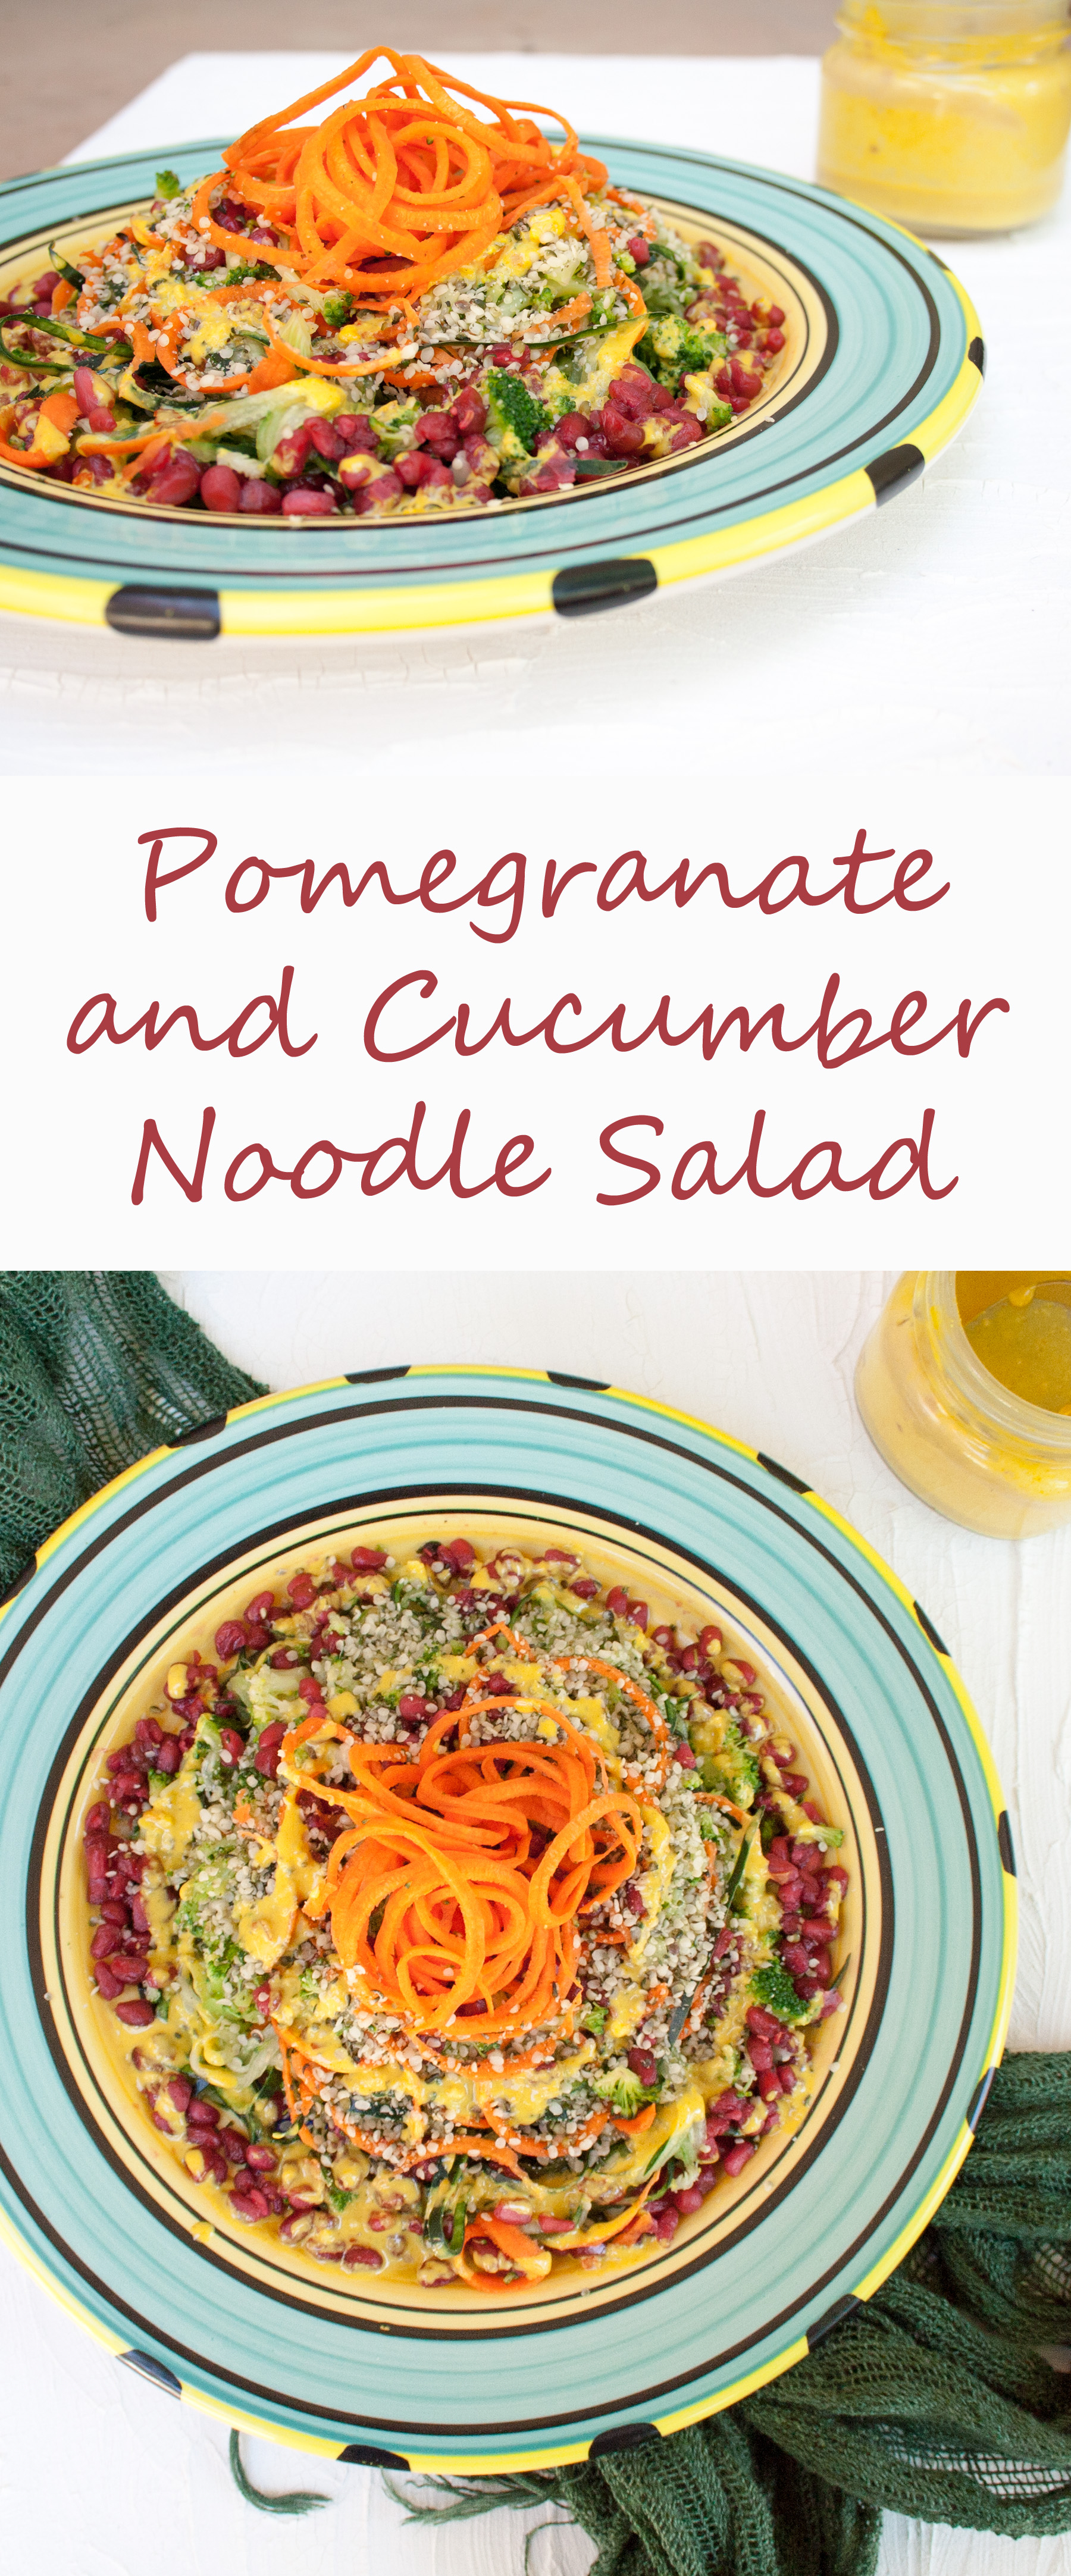 Pomegranate and Cucumber Noodle Salad collage photo with text.